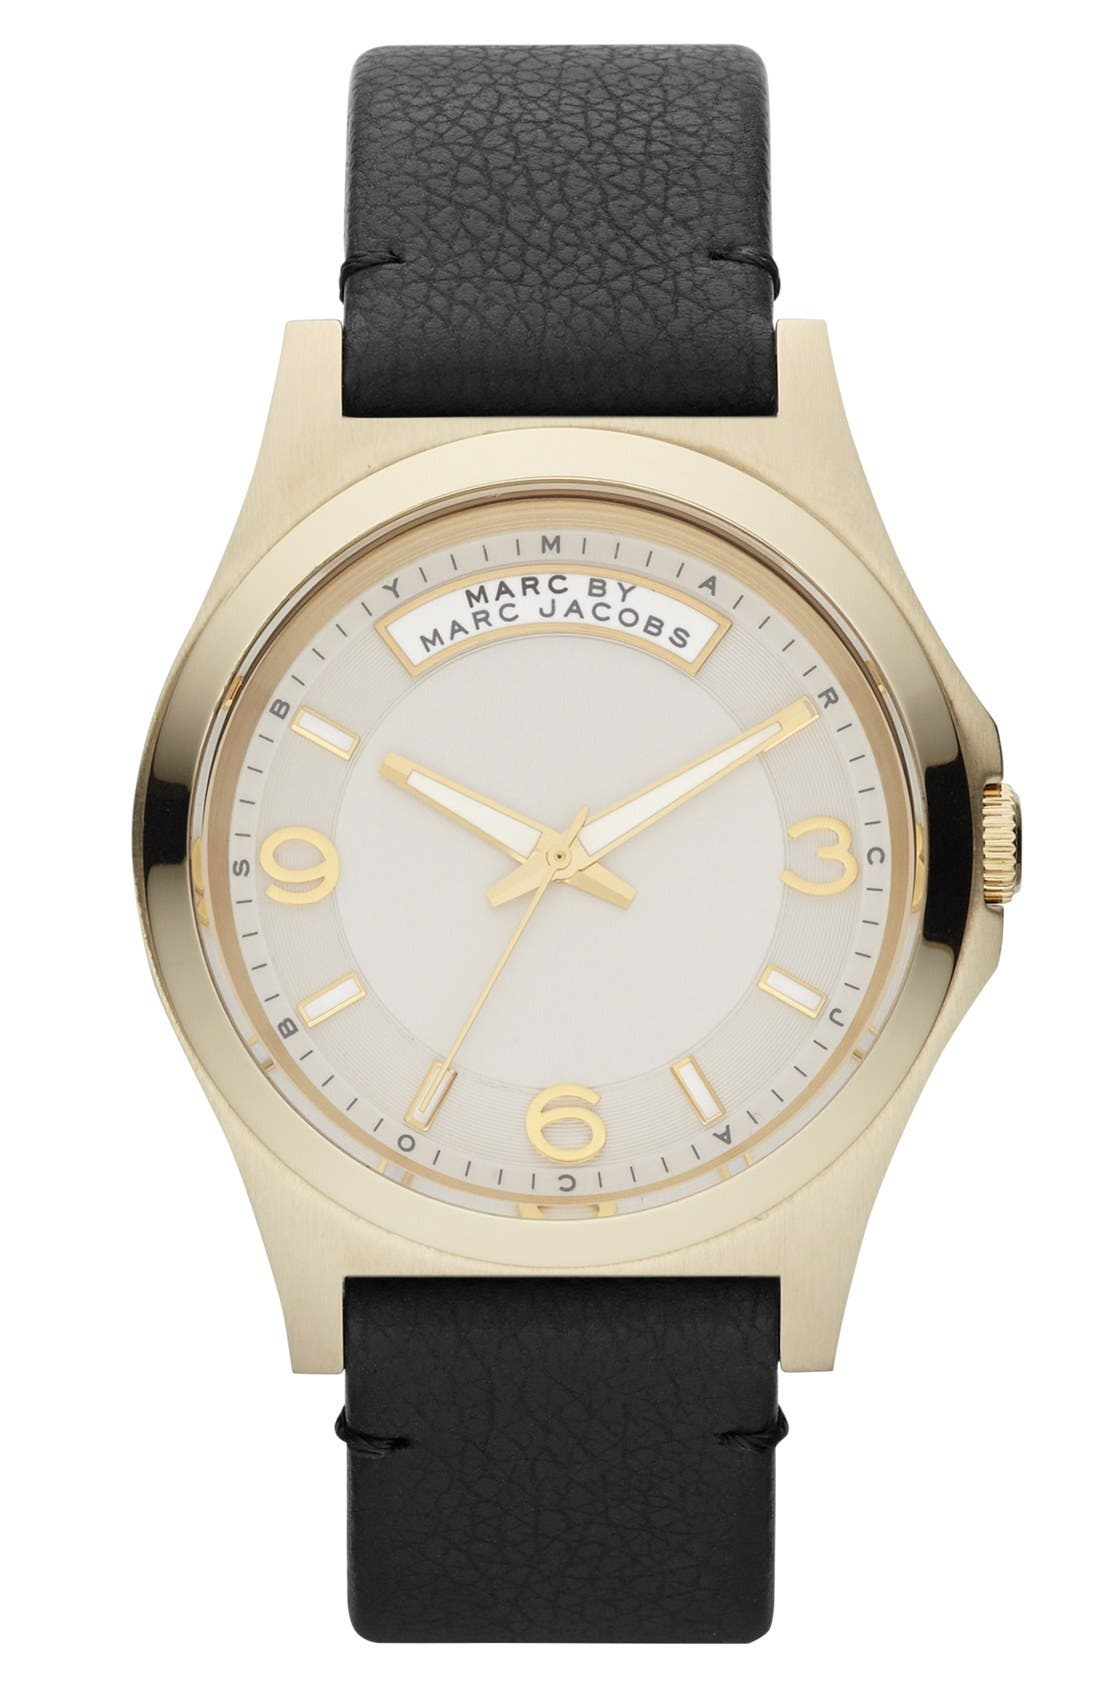 Main Image - MARC BY MARC JACOBS 'Baby Dave' Leather Strap Watch, 40mm